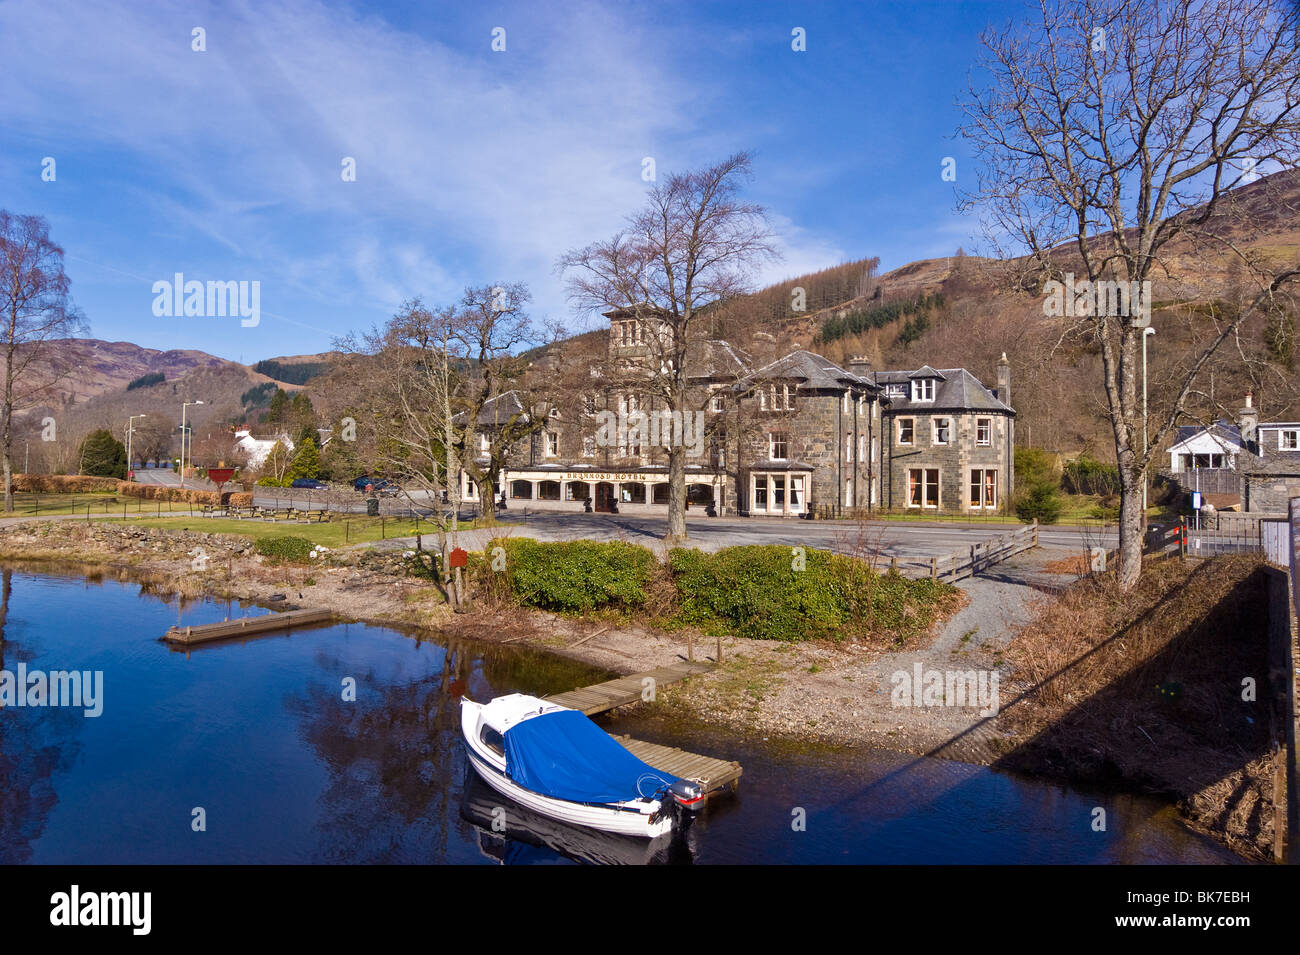 The Drummond Hotel in St Fillans on the shore of Loch Earn in Scotland - Stock Image